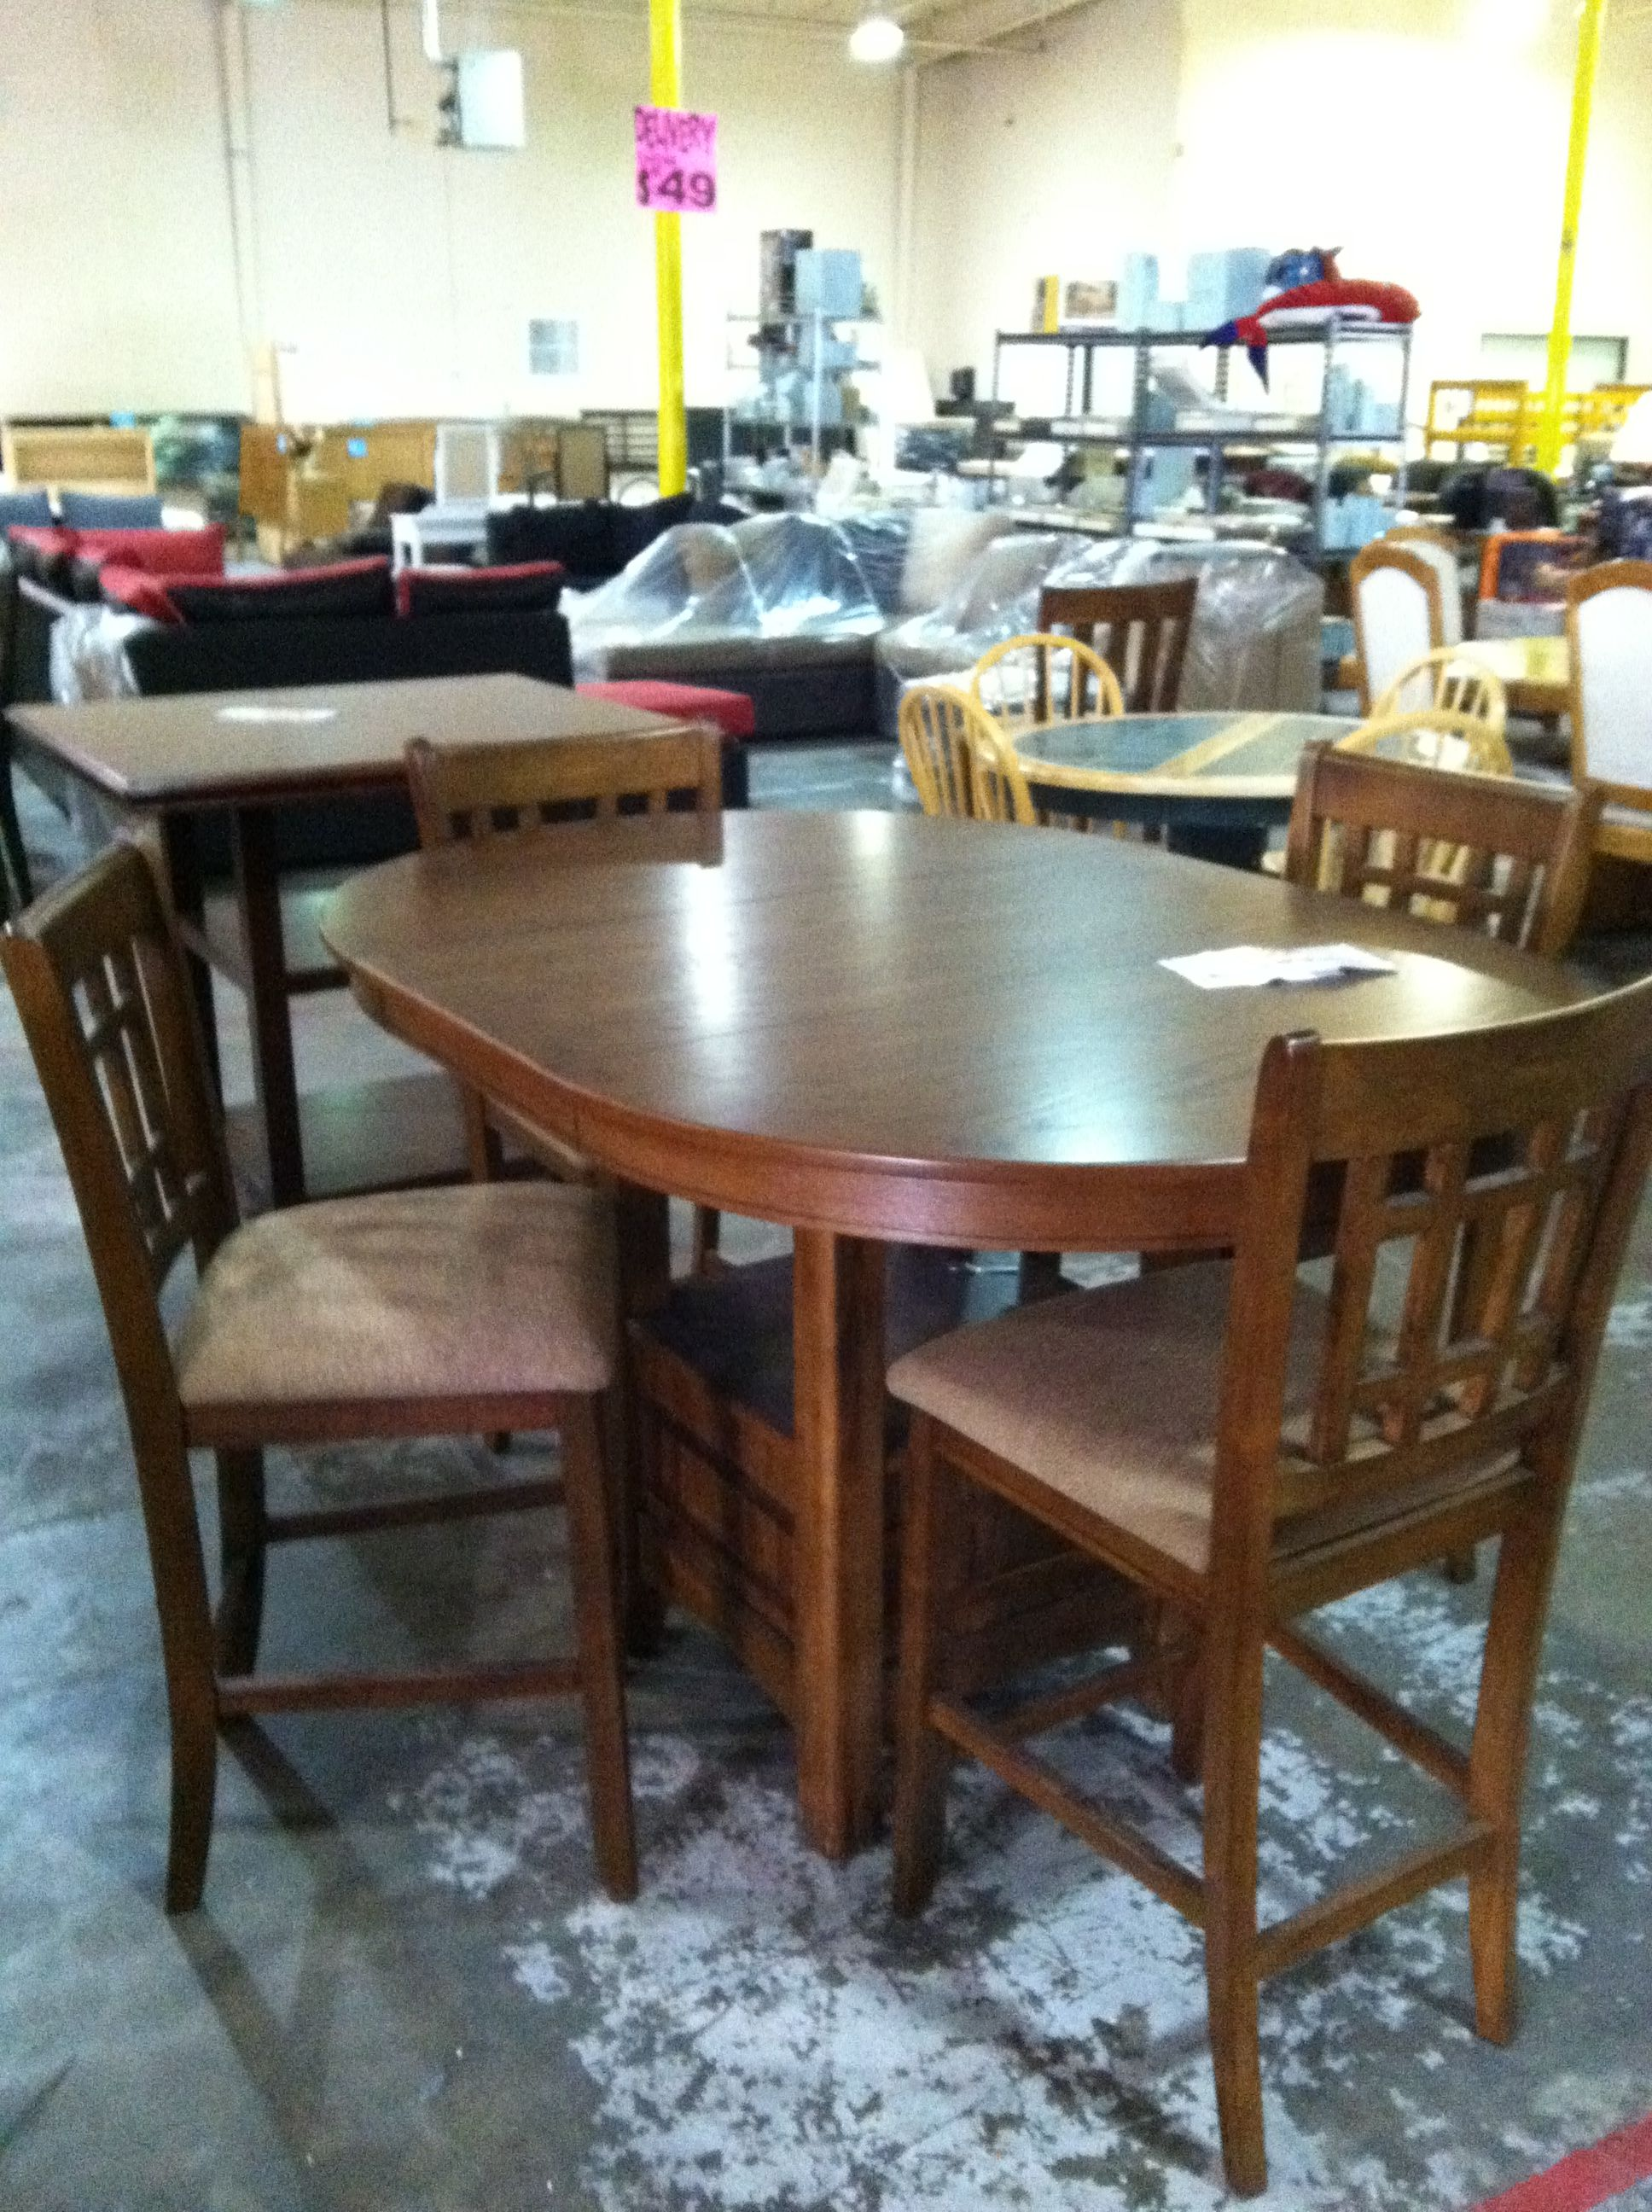 Cheap Price Furniture My New Dining Set Found In A Lil Gold Mind Cheap Price But Not